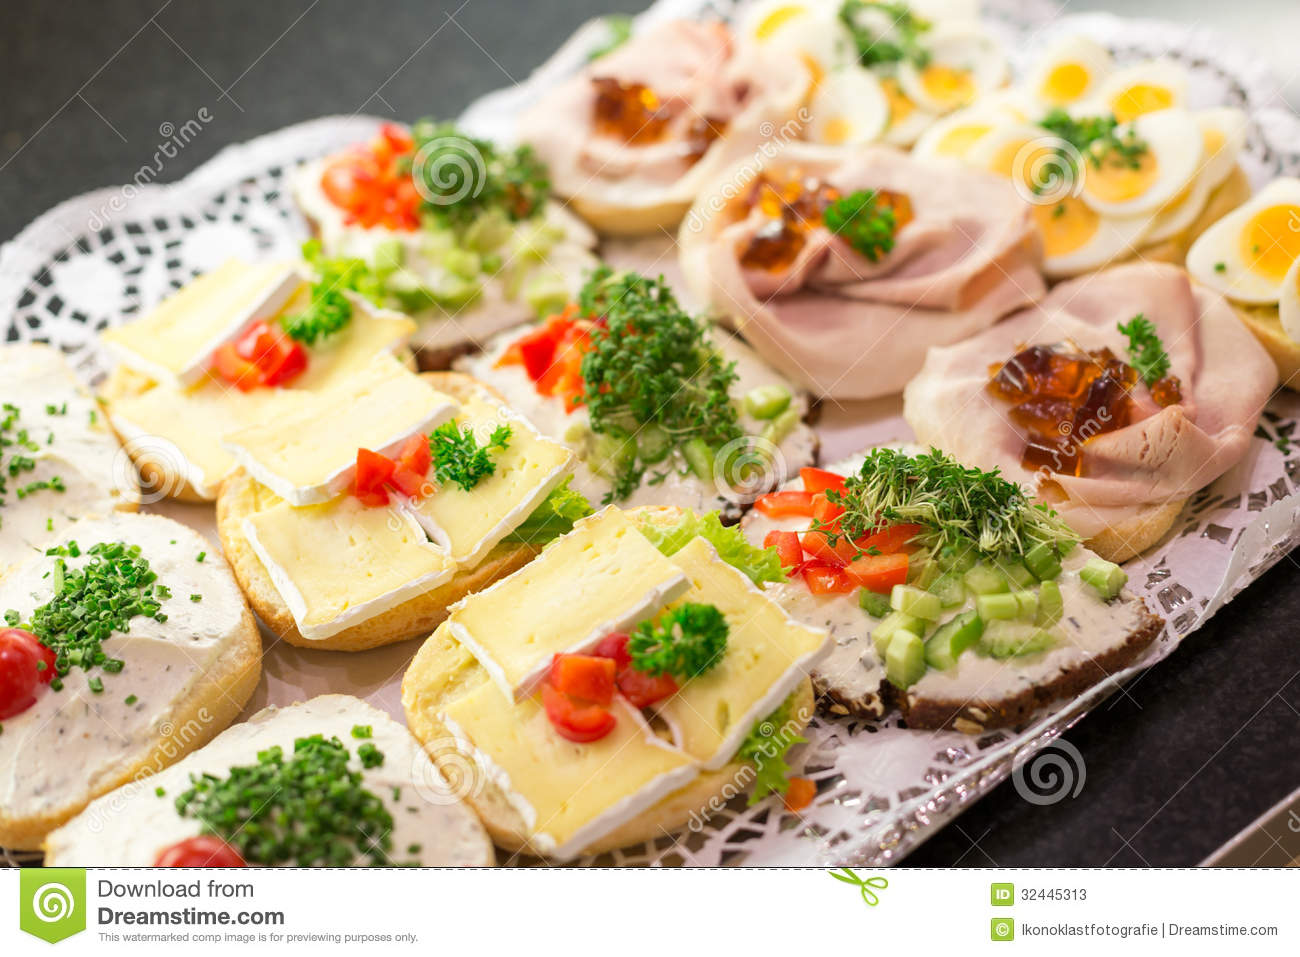 Sandwiches With Cold Cuts On A Tray Stock Image Image Of Catering Dinner 32445313